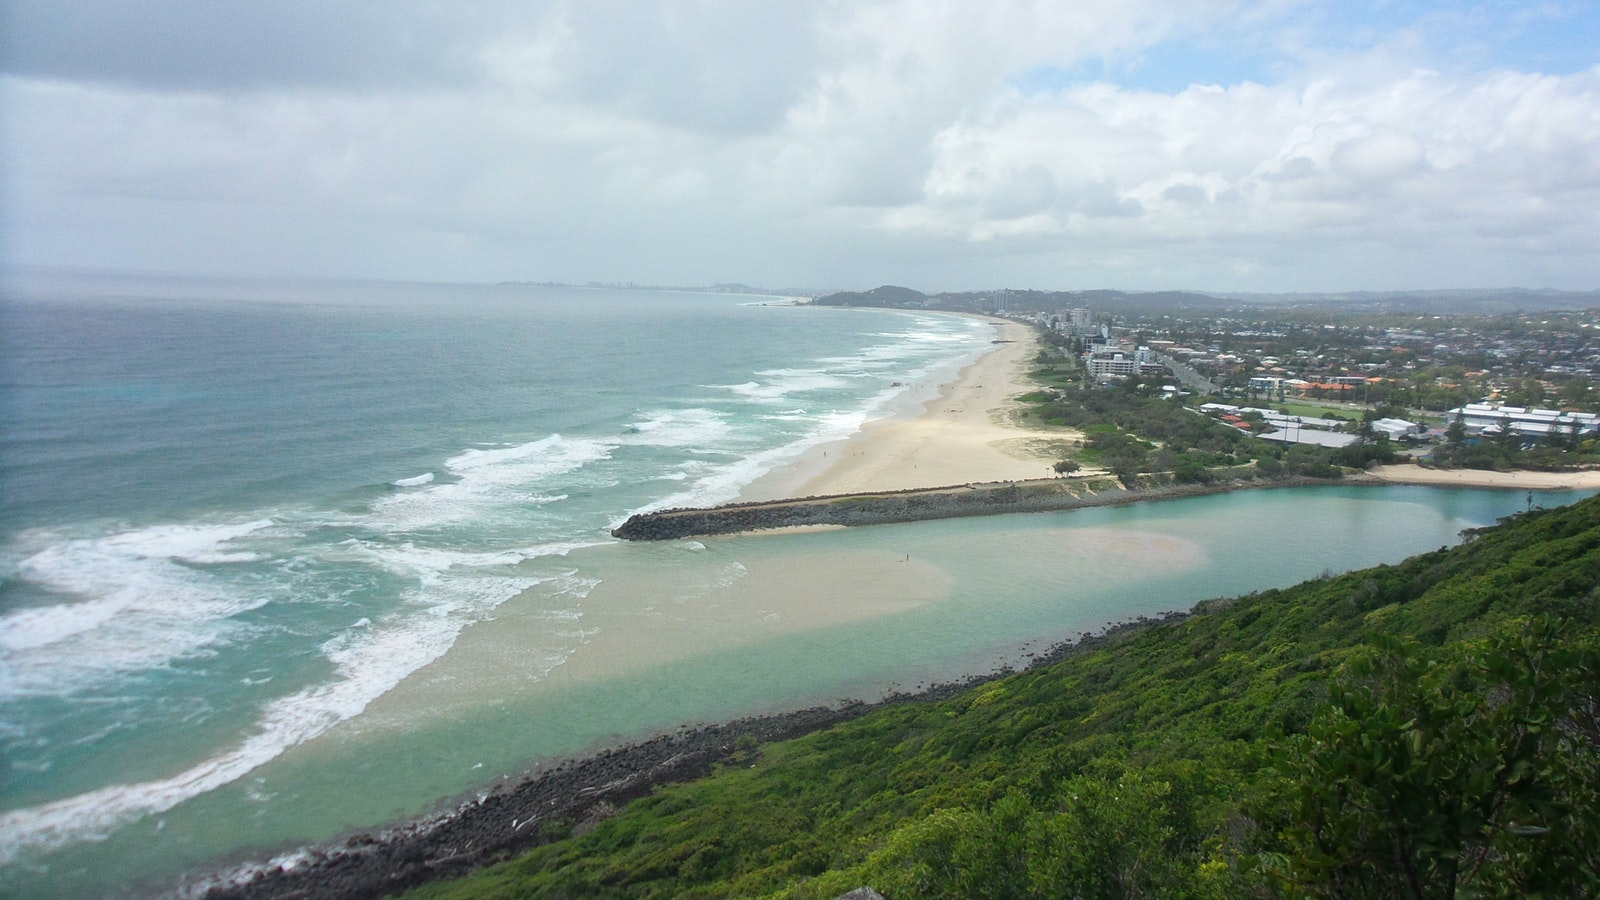 View over Tallebudgera Creek from Tumgun lookout, Rainforest Circuit, Burleigh Head